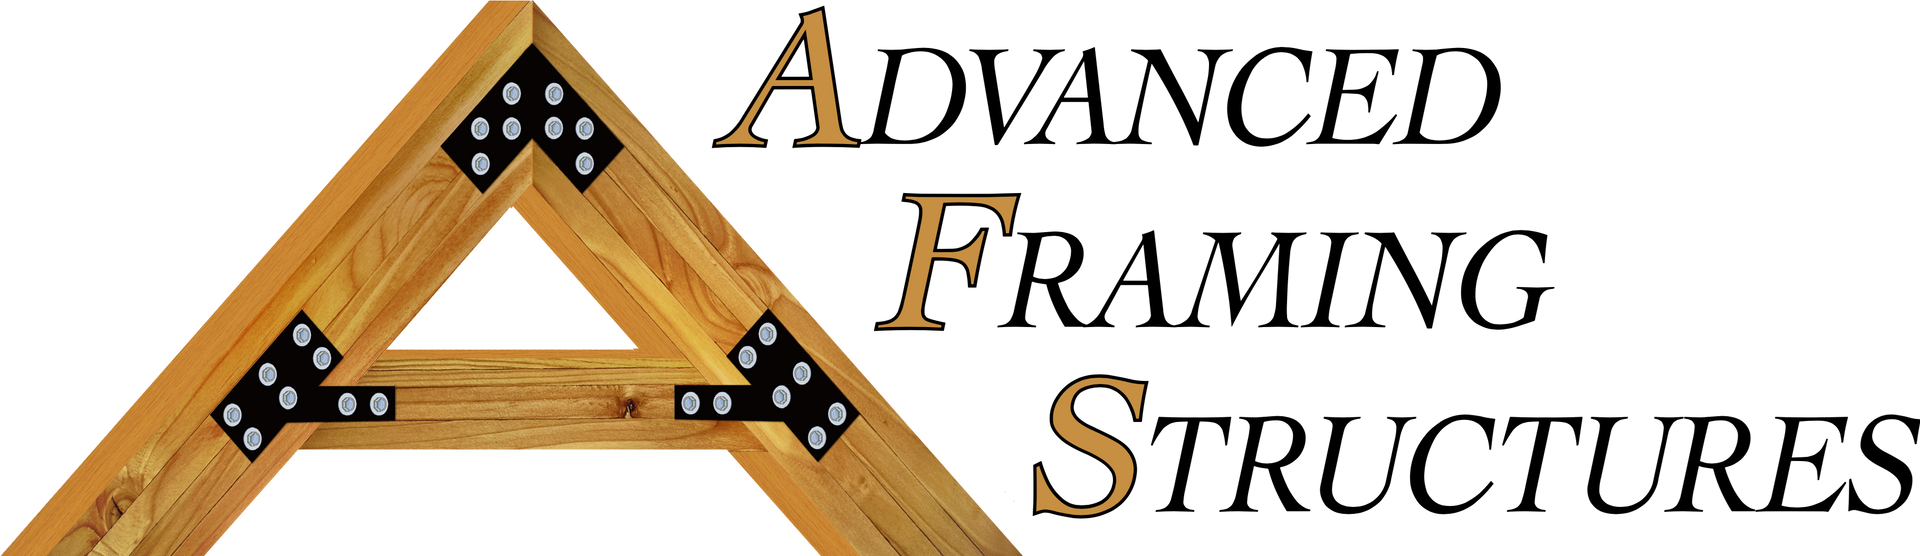 Advance  Framing Structures Logo